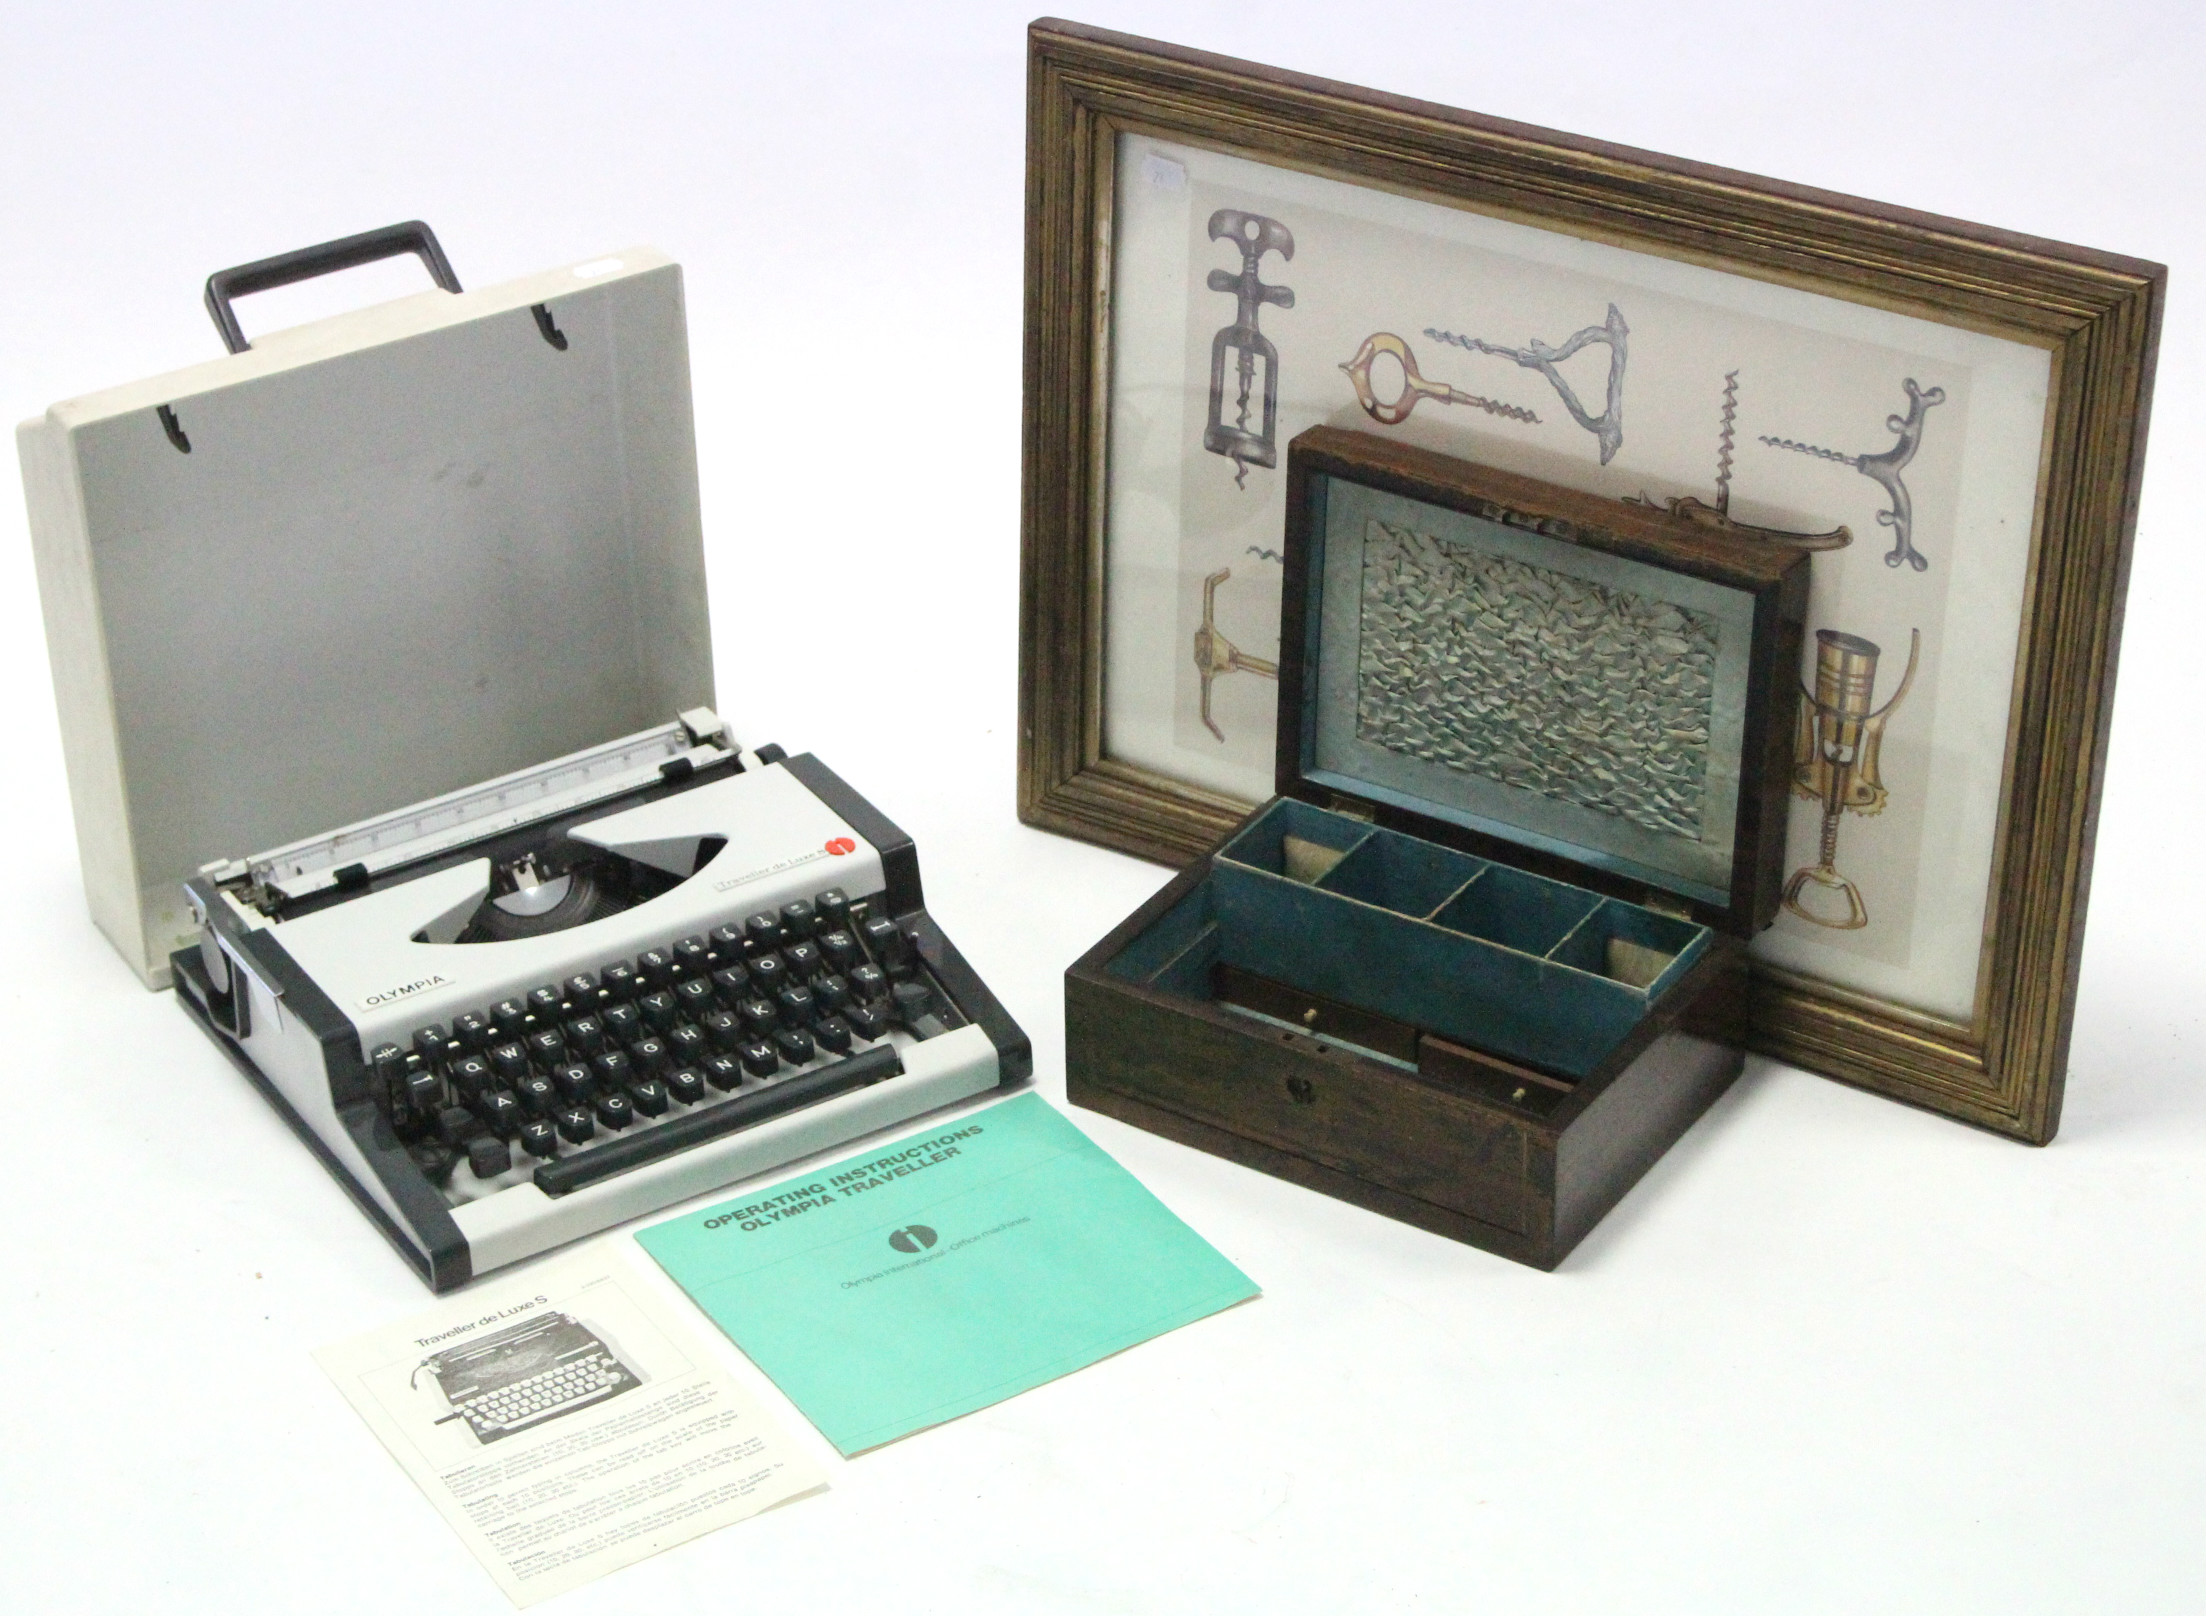 Lot 26 - A 19th century walnut trinket box; an Olympia portable typewriter; two telephones; various 78 r.